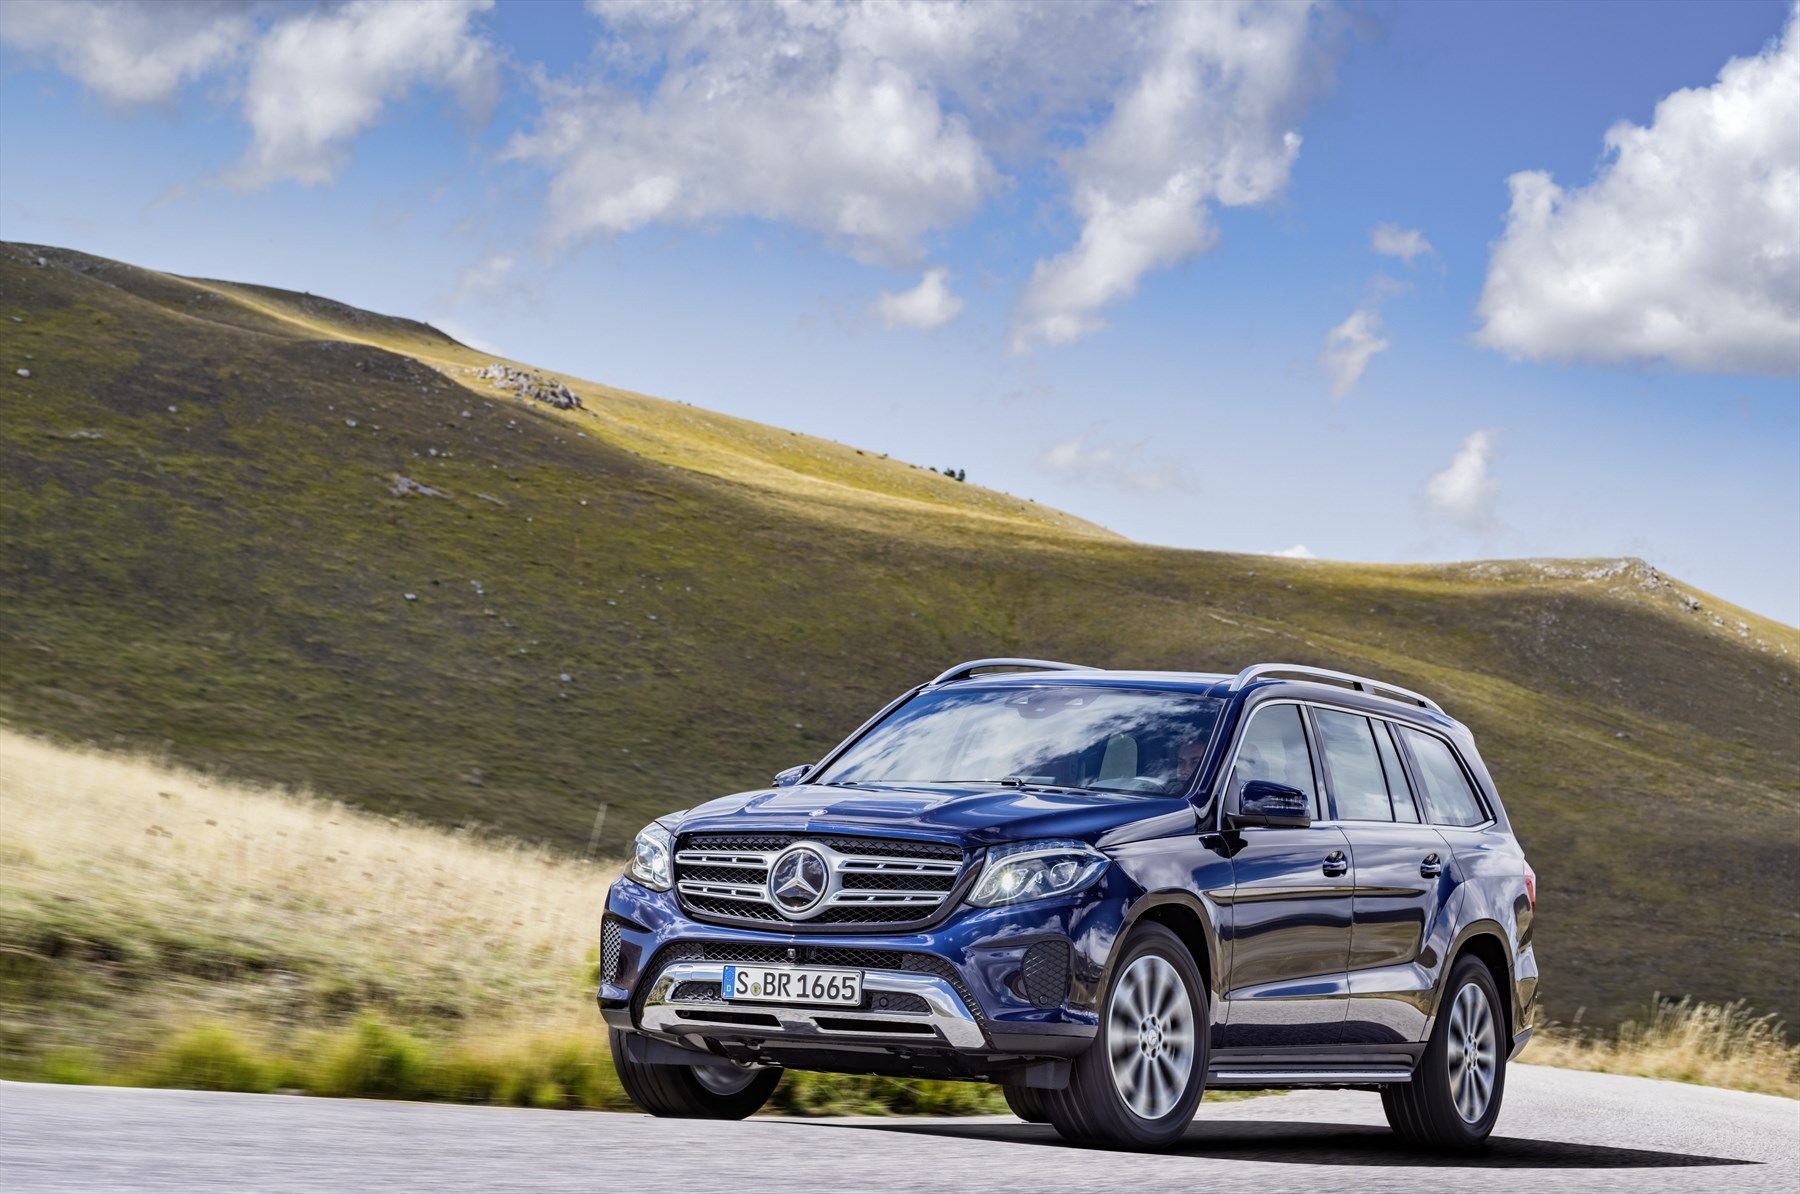 hero class luxury suv dr amg mbcan vehicles en mercedes small type gla benz